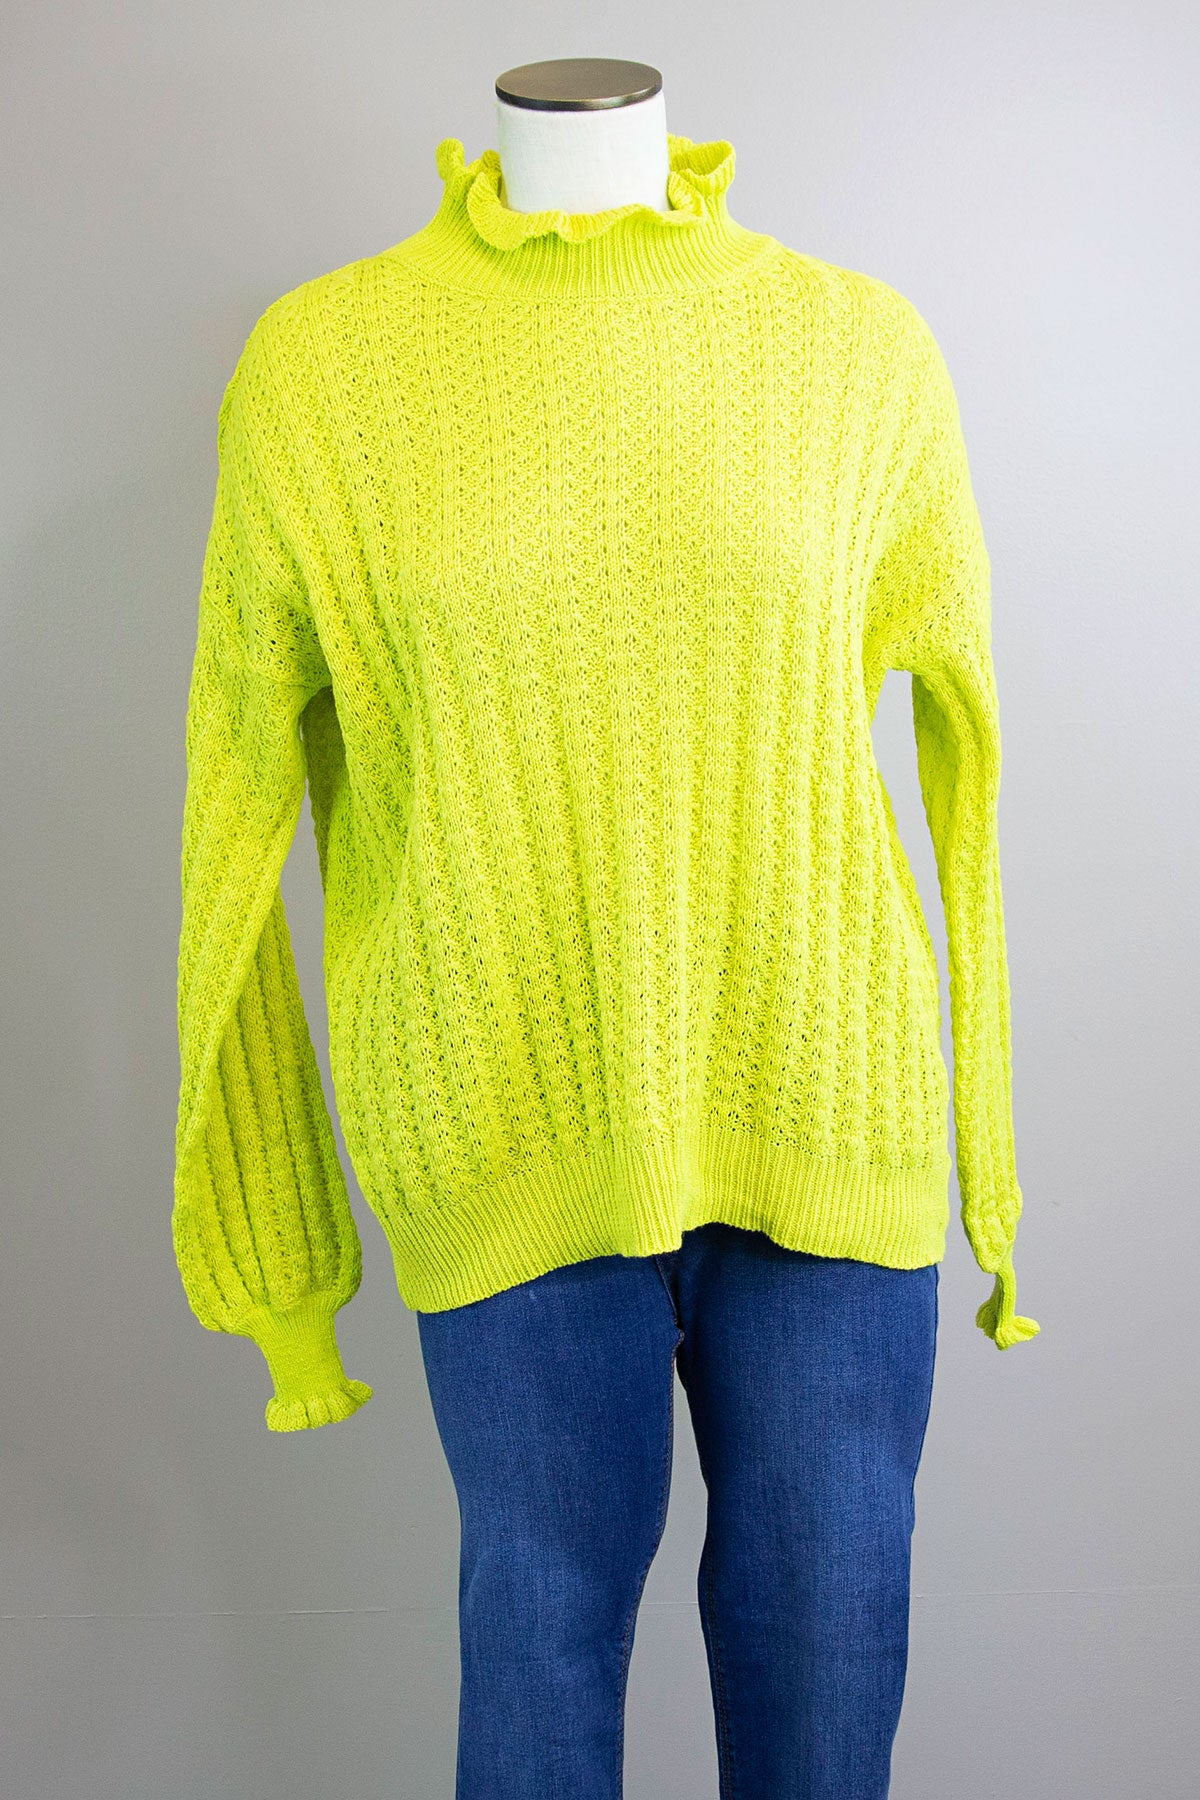 Key-Lime sweater